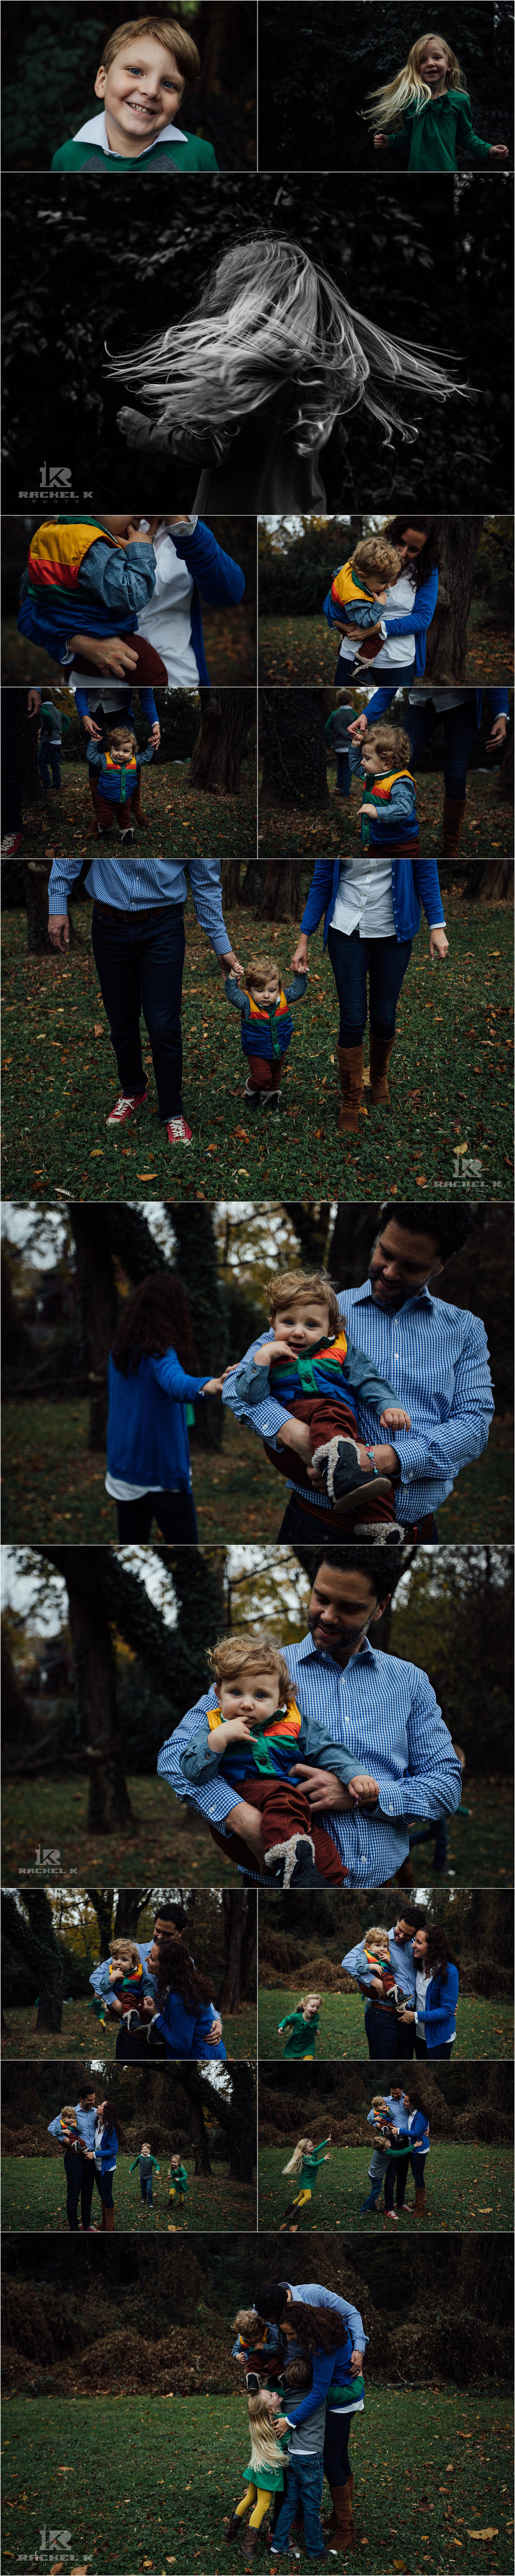 Three kids family session in Arlington Virginia by Rachel K Photo